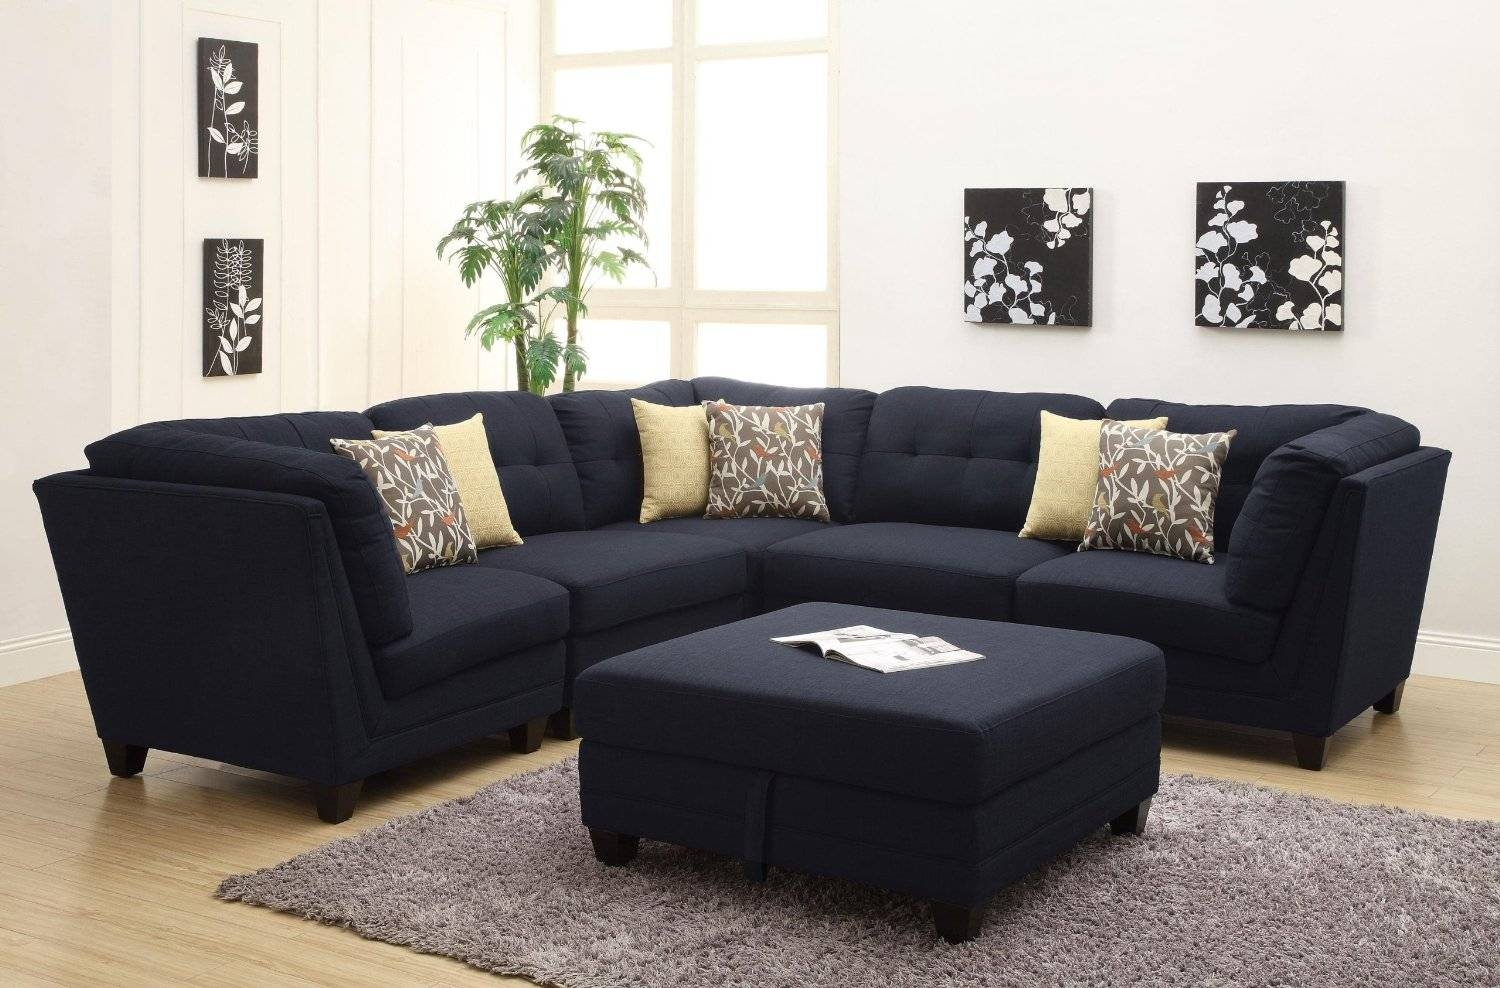 Most Comfortable Sectional Sofas Numbered In The Couch Group - Tikspor inside Large Comfortable Sectional Sofas (Image 19 of 25)